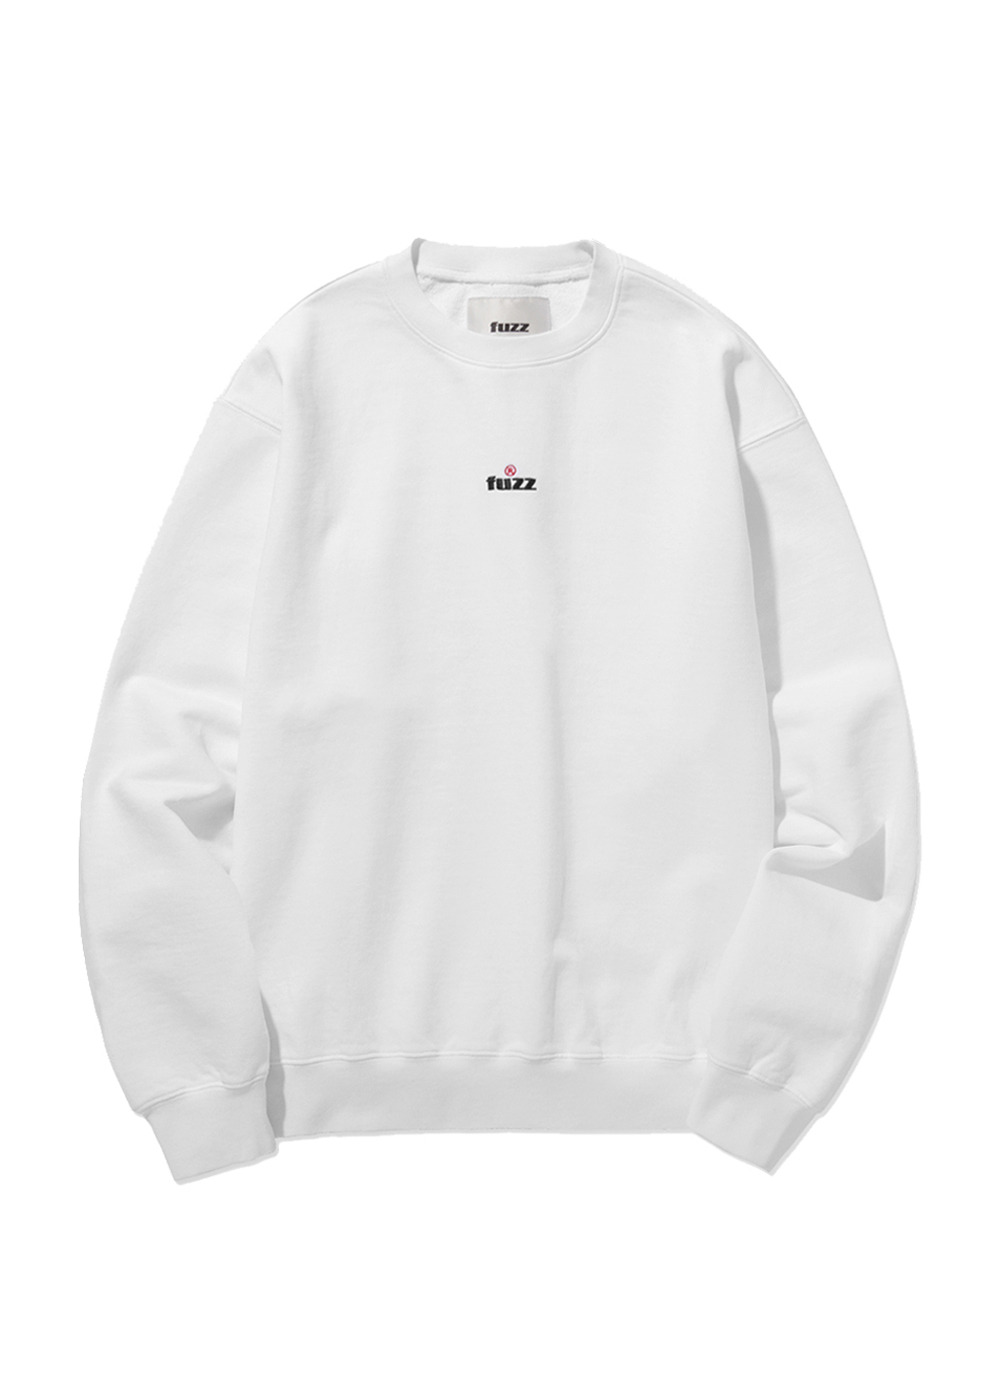 FUZZ OVER DYED SWEATSHIRT white